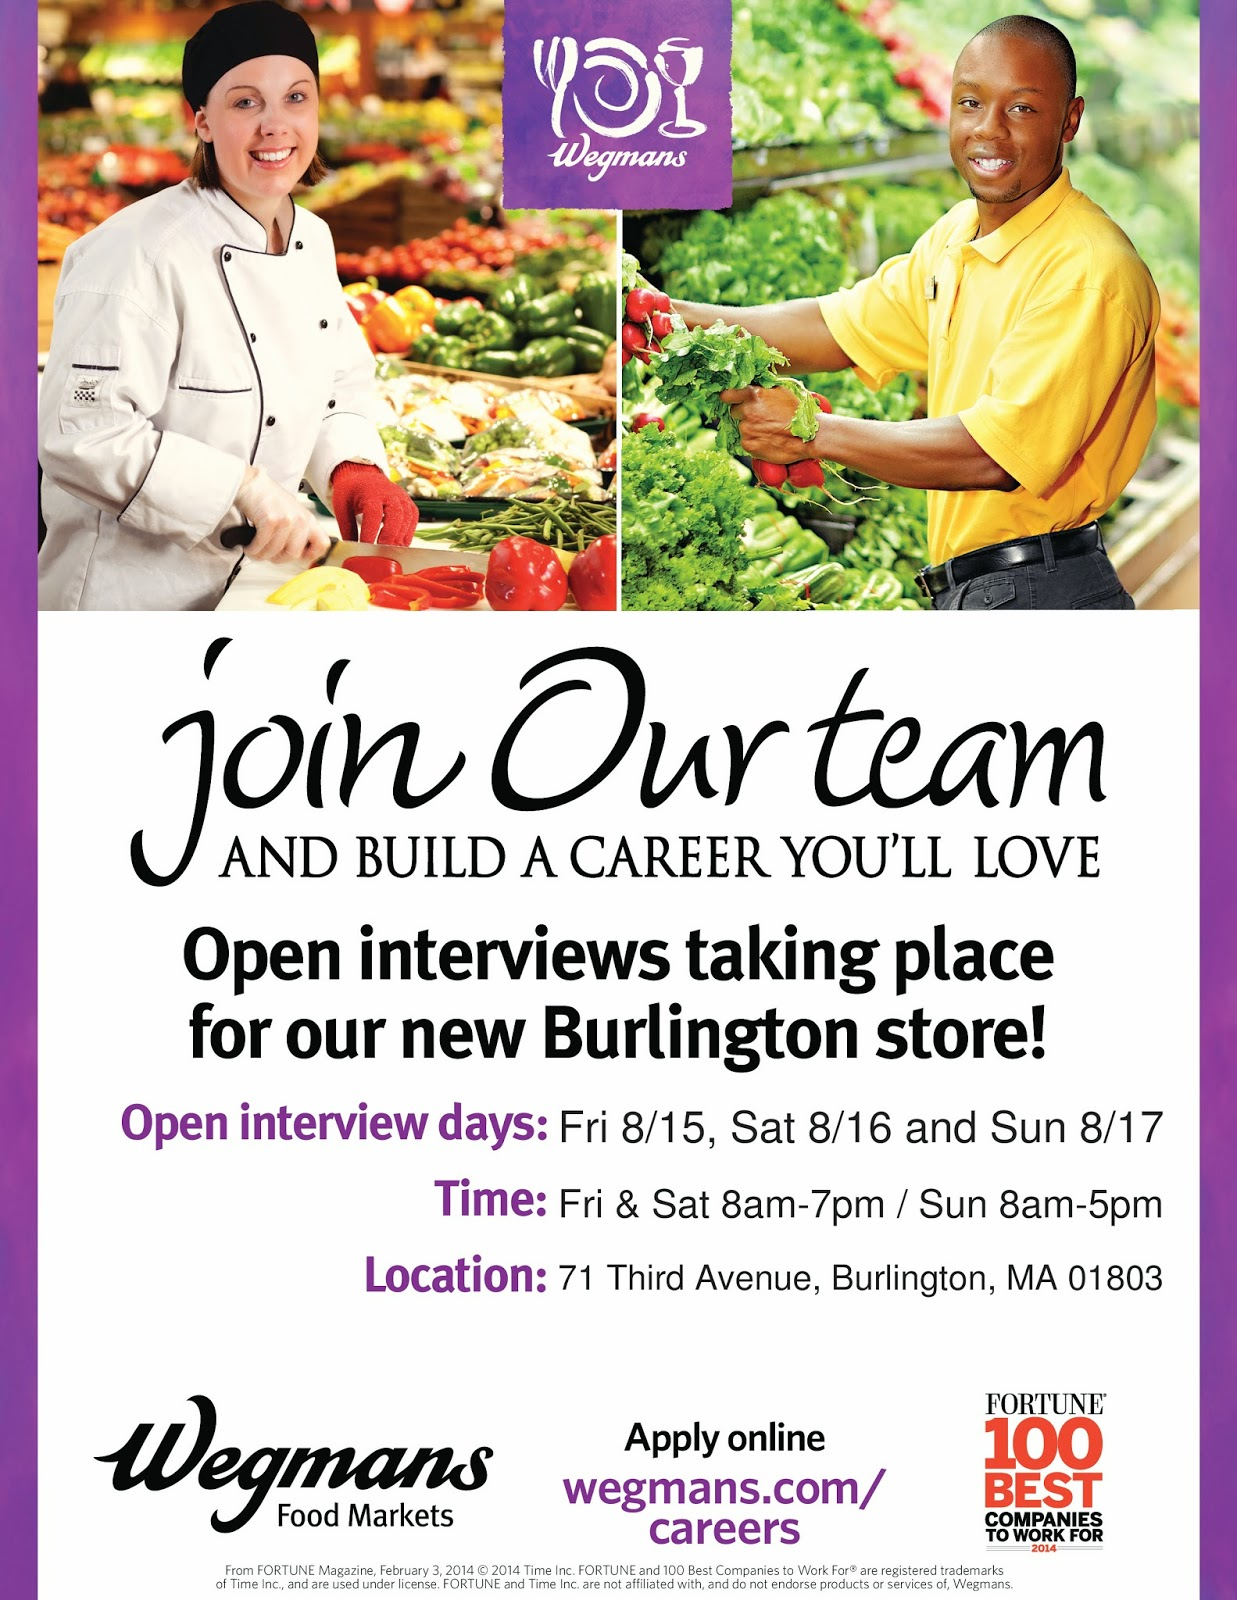 burlington high school principal s blog any students looking for the new wegmans in burlington is now hiring 400 part time employees if you re looking and interested check out the flyer below